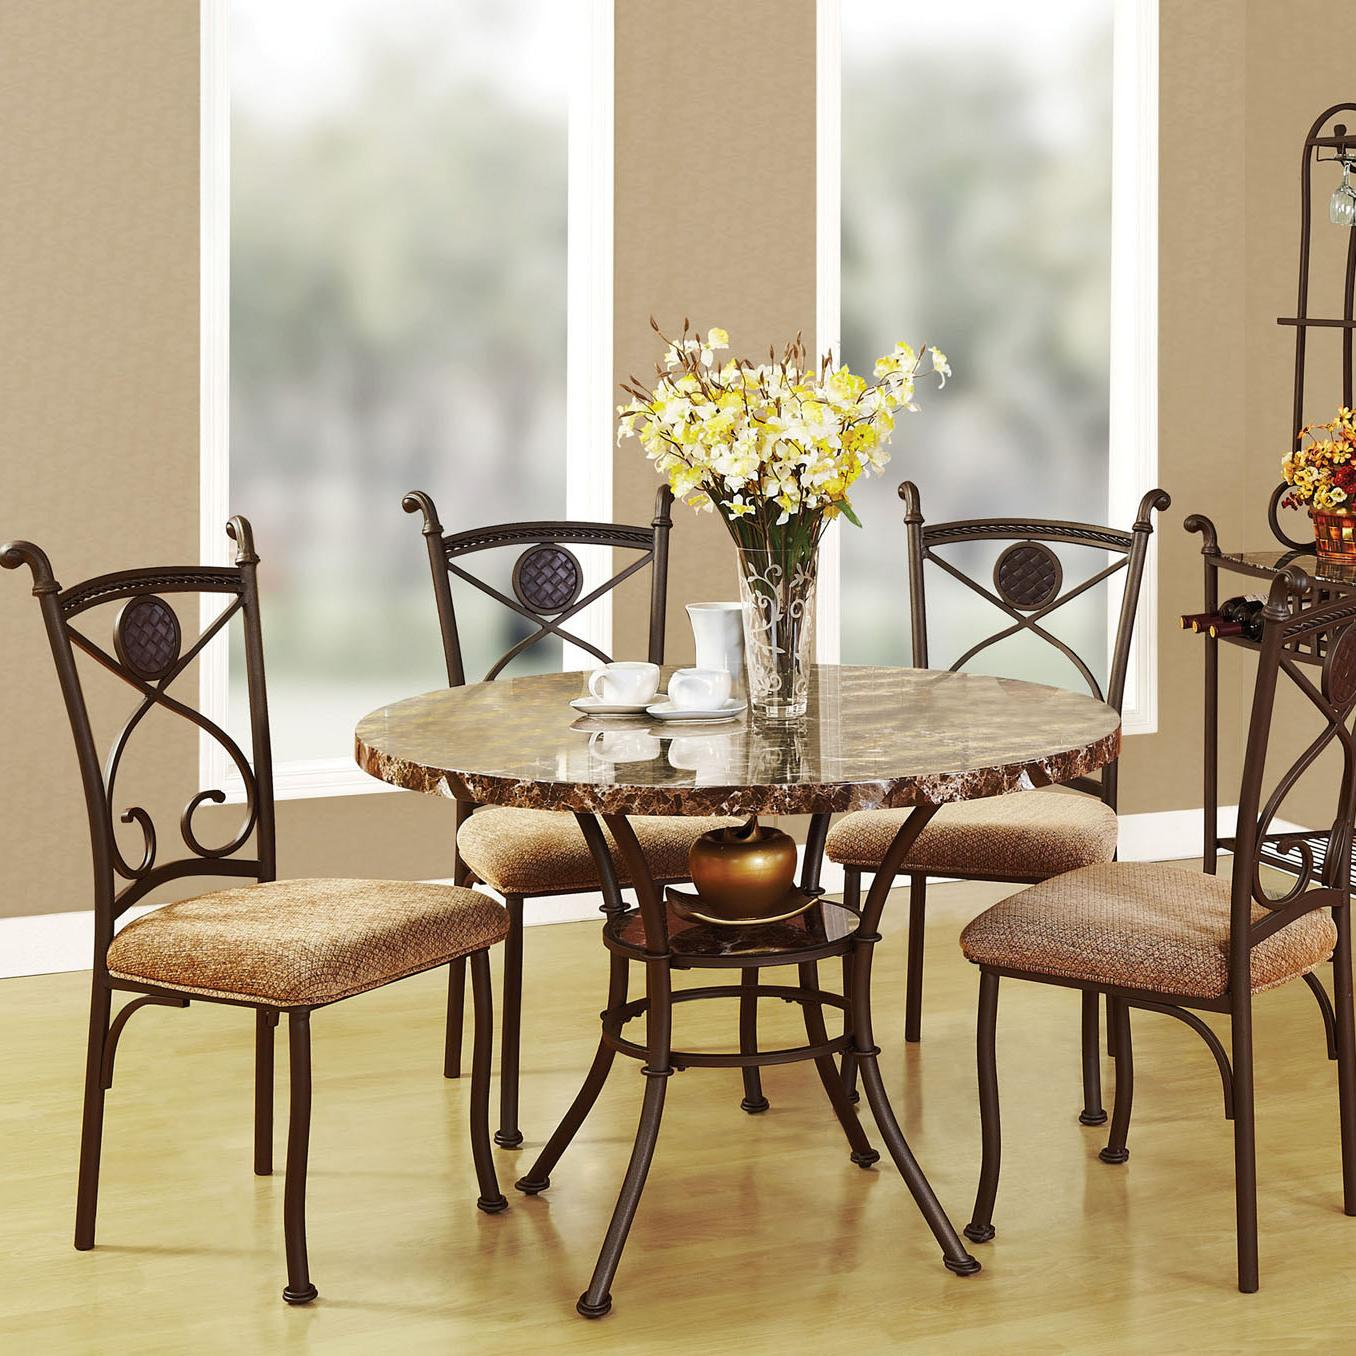 Acme Furniture Kleef 5-Piece Dining Table and Chair Set - Item Number 70555 & Acme Furniture Kleef 70555 Casual 5-Piece Dining Set | Del Sol ...